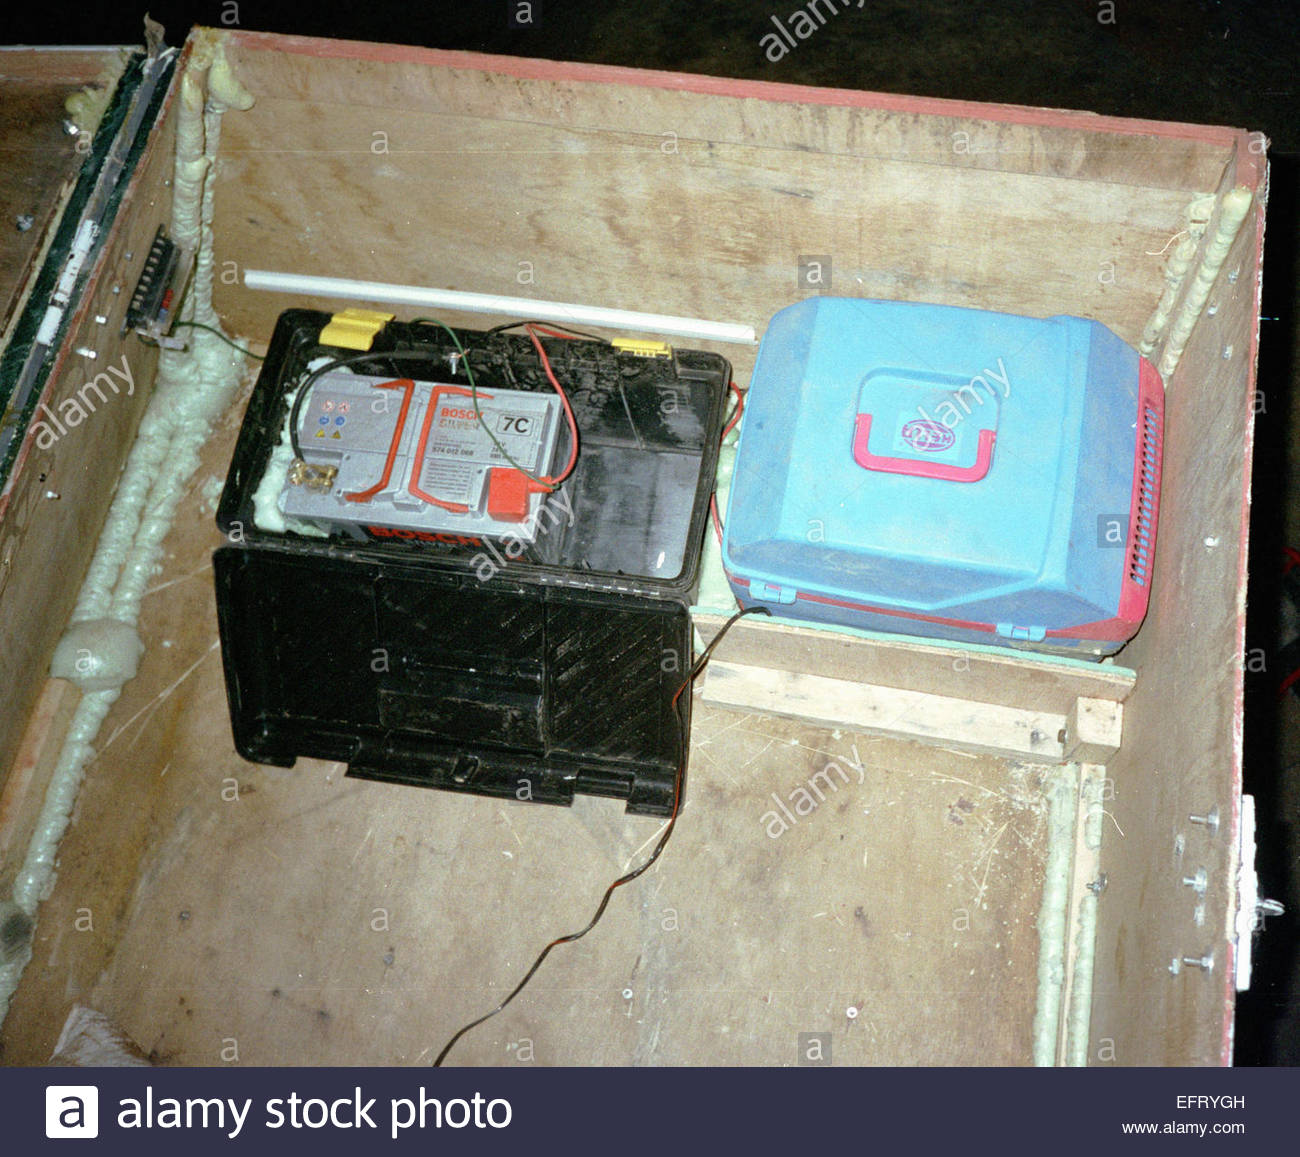 Dual Battery System Defective African Land Rover Jeep Safari Veh Search Results For Stock Photos And Images